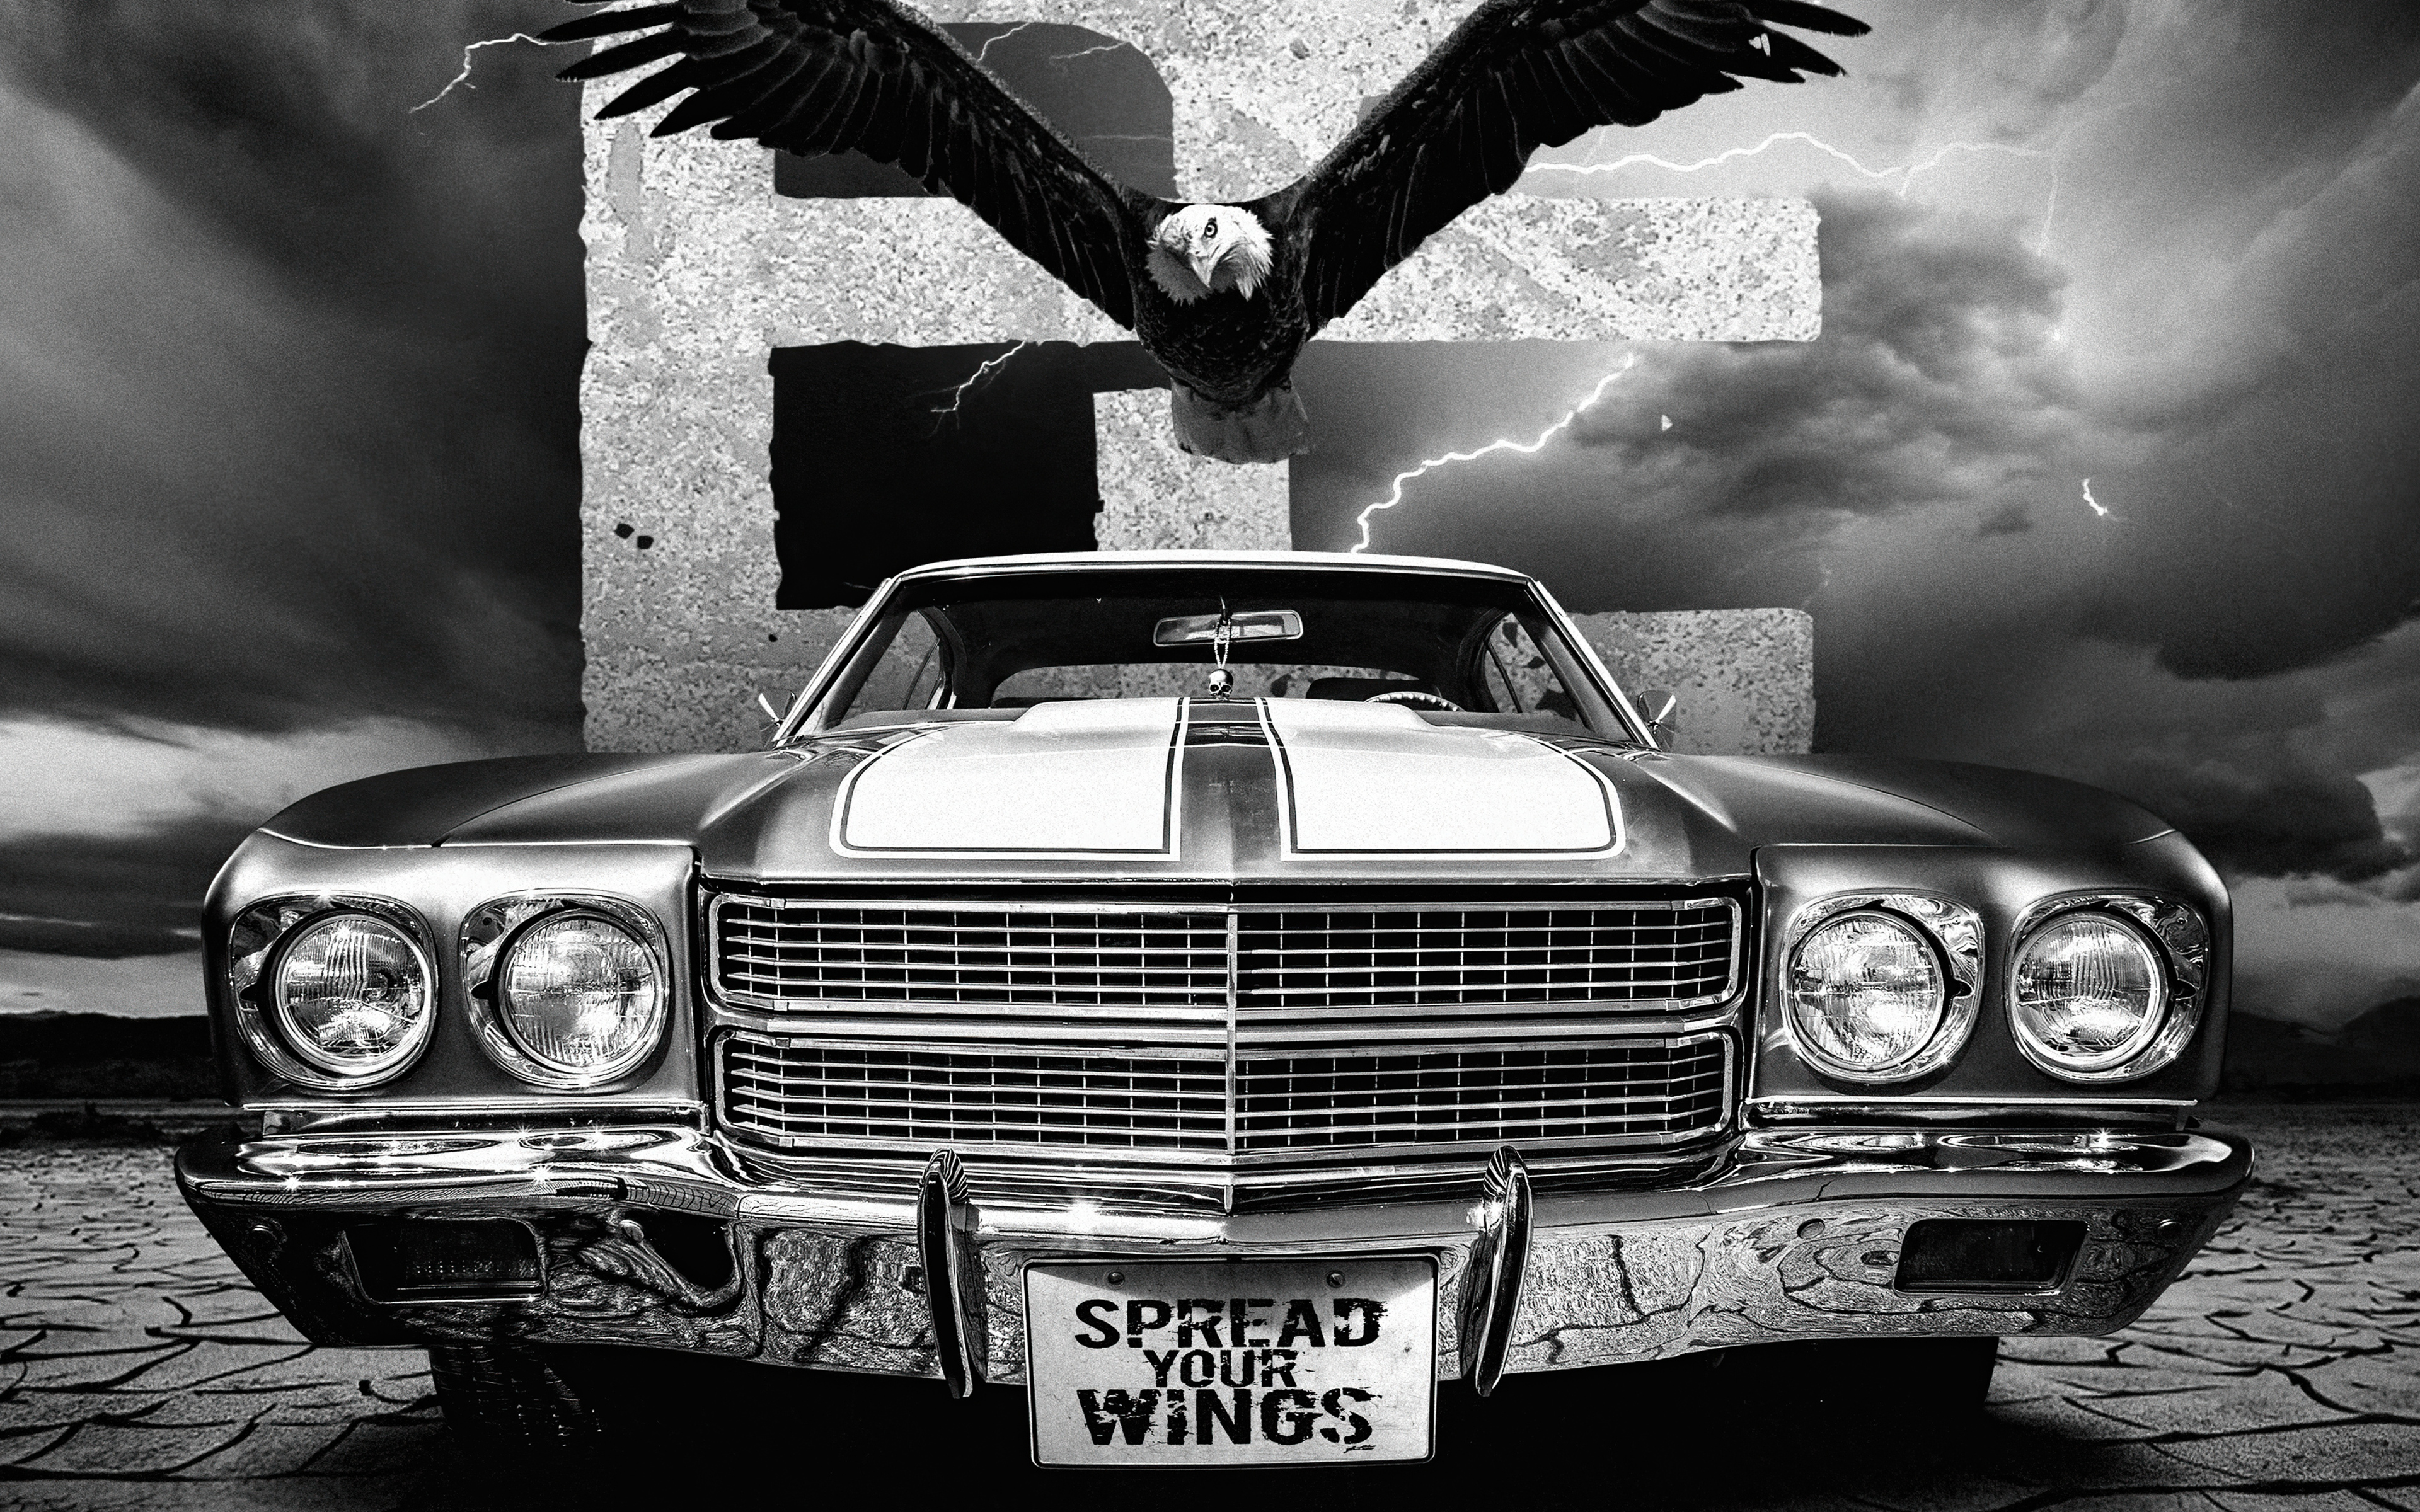 spread-your-wings-jr.jpg